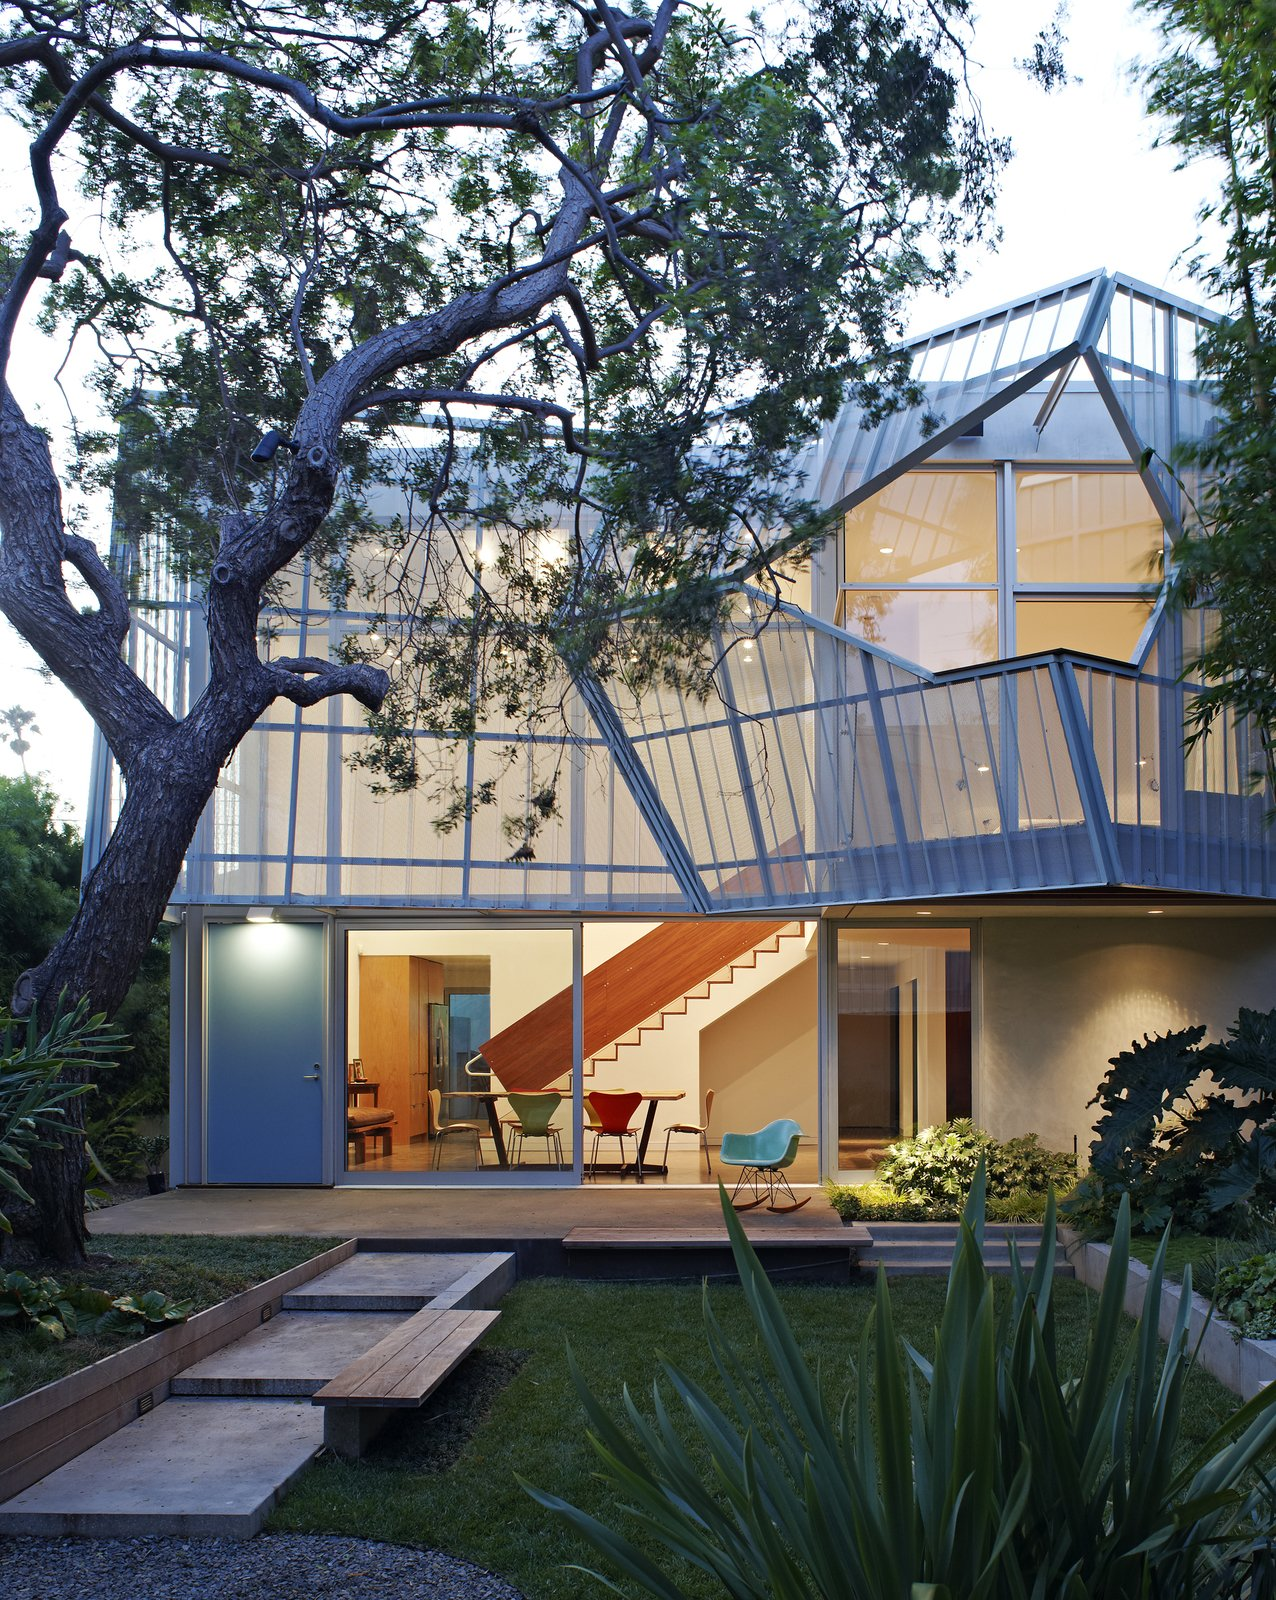 Outdoor, Grass, Small Patio, Porch, Deck, Concrete Patio, Porch, Deck, and Back Yard  House ideas from A Perforated Screen Brings Privacy and Natural Light to This Bold Venice Home